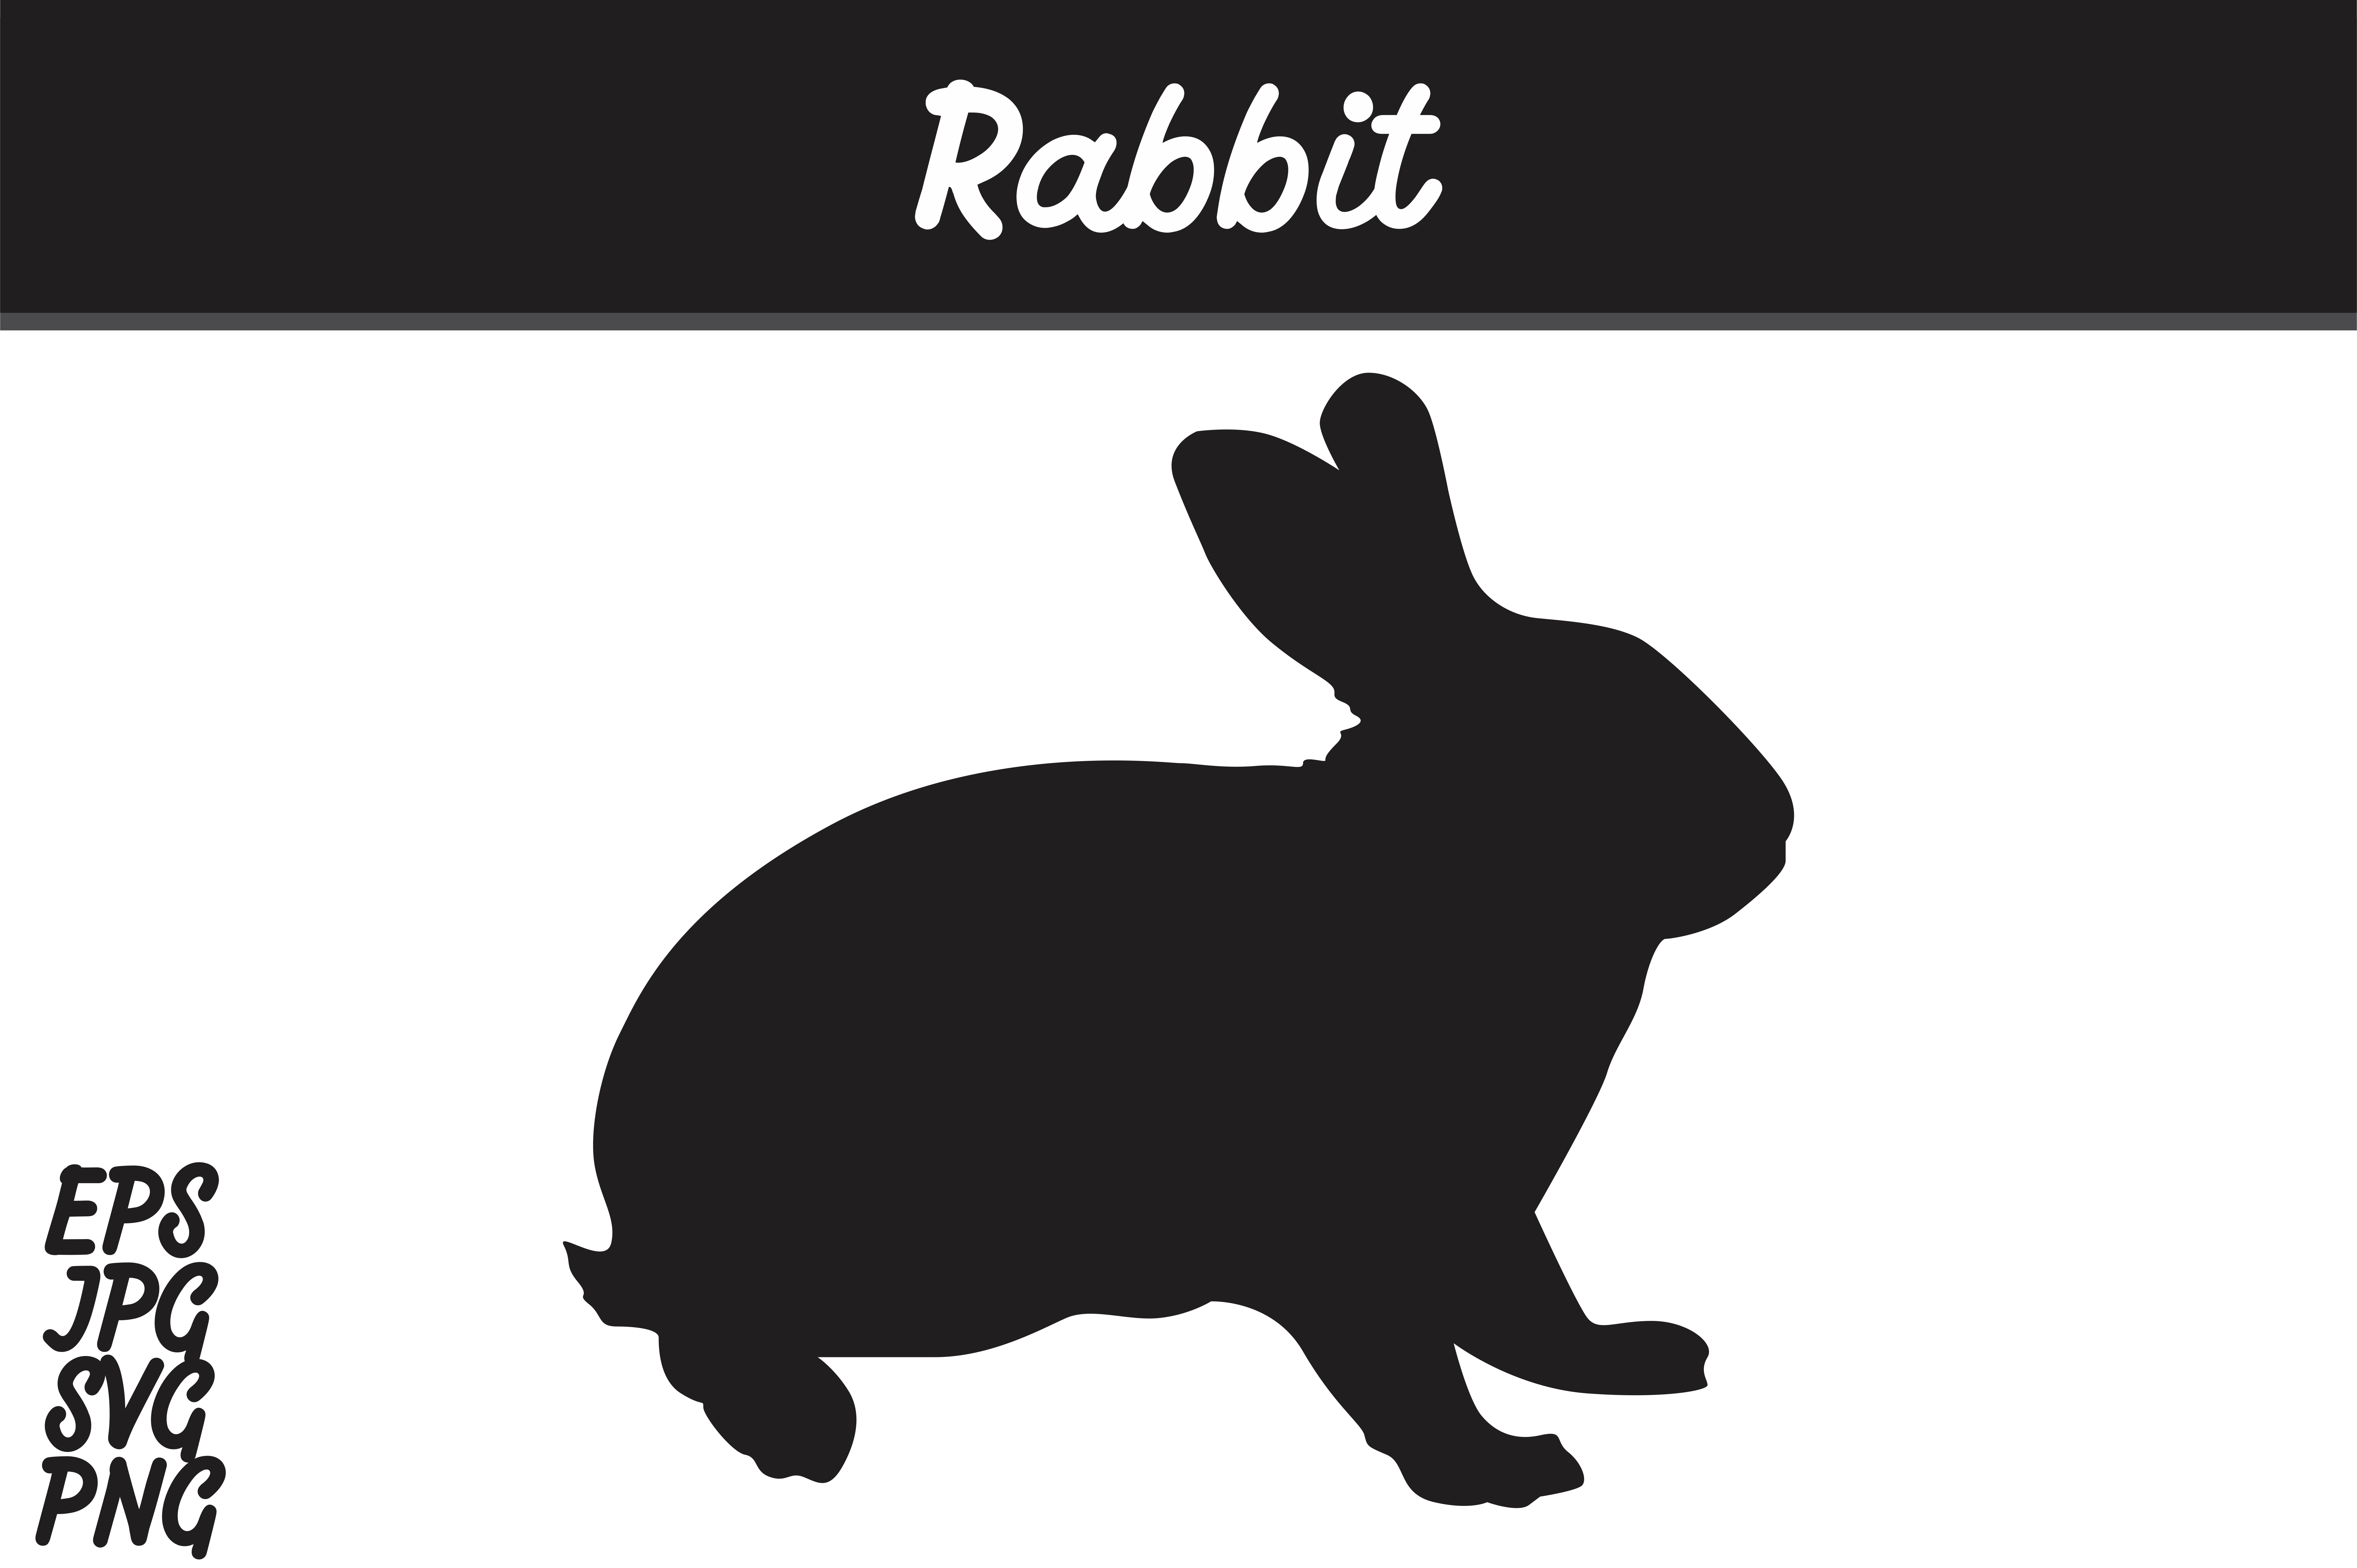 Download Free Rabbit Silhouette Svg Vector Image Graphic By Arief Sapta Adjie for Cricut Explore, Silhouette and other cutting machines.